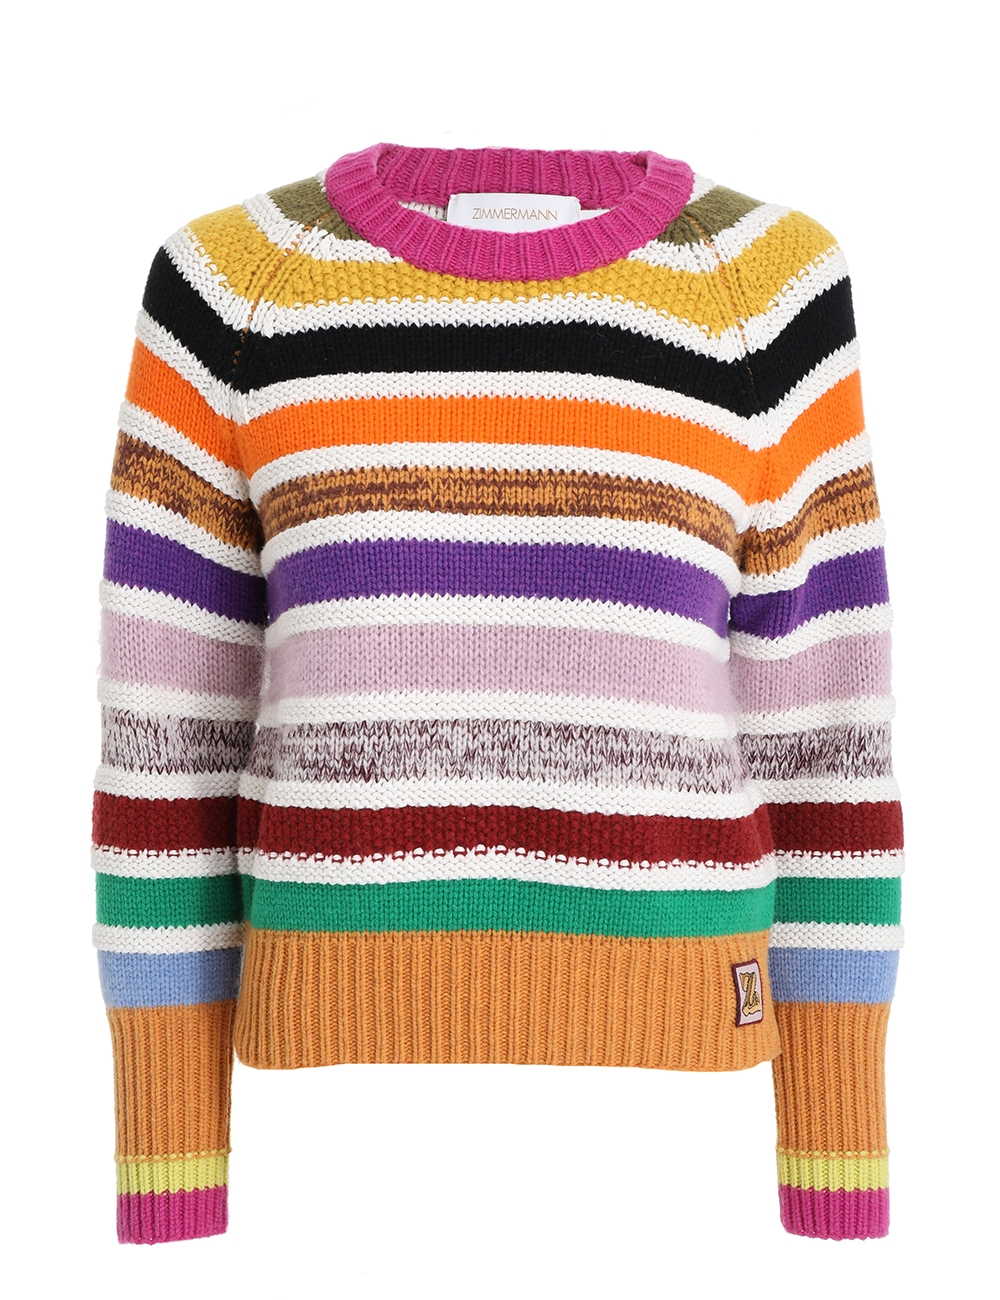 Concert Striped Sweater